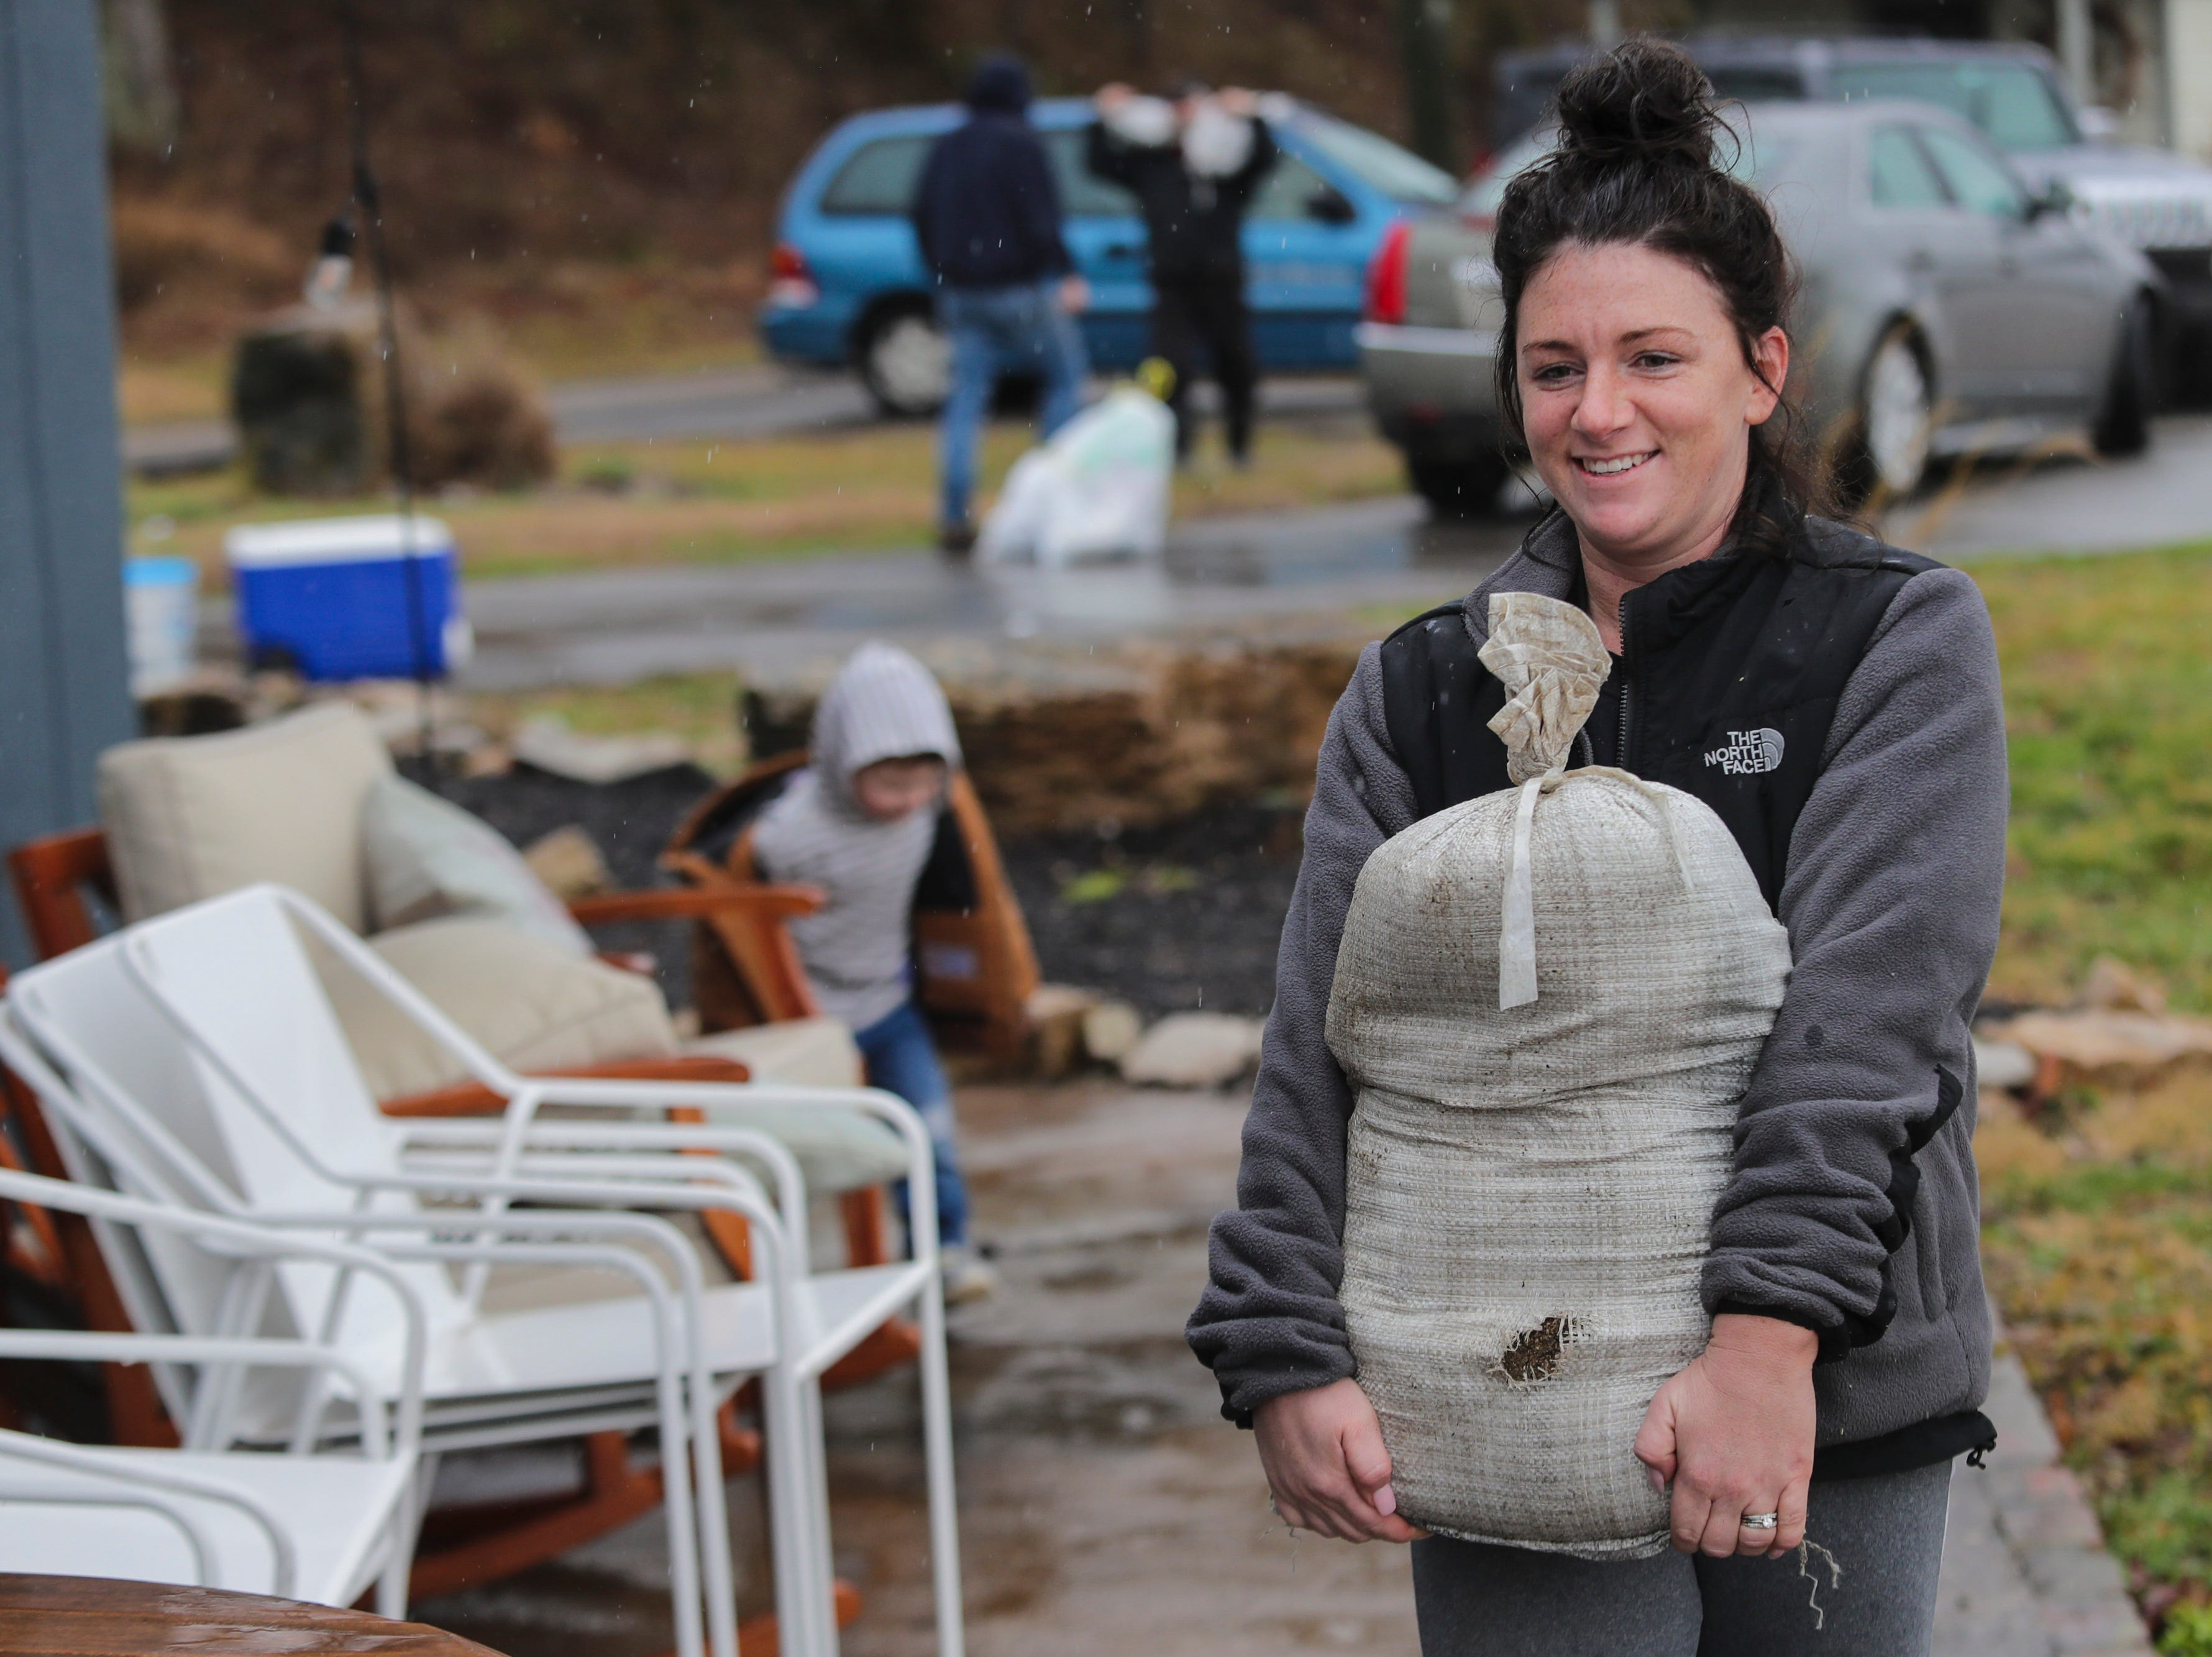 """""""I'm used to it. I grew up on the river,"""" Maggie Moore said as she carried sandbags into a home in Utica, Ind.. """"It's just a part of river life."""" Ohio River water levels are expected to hit 30 feet in the coming days. Feb. 11, 2019"""